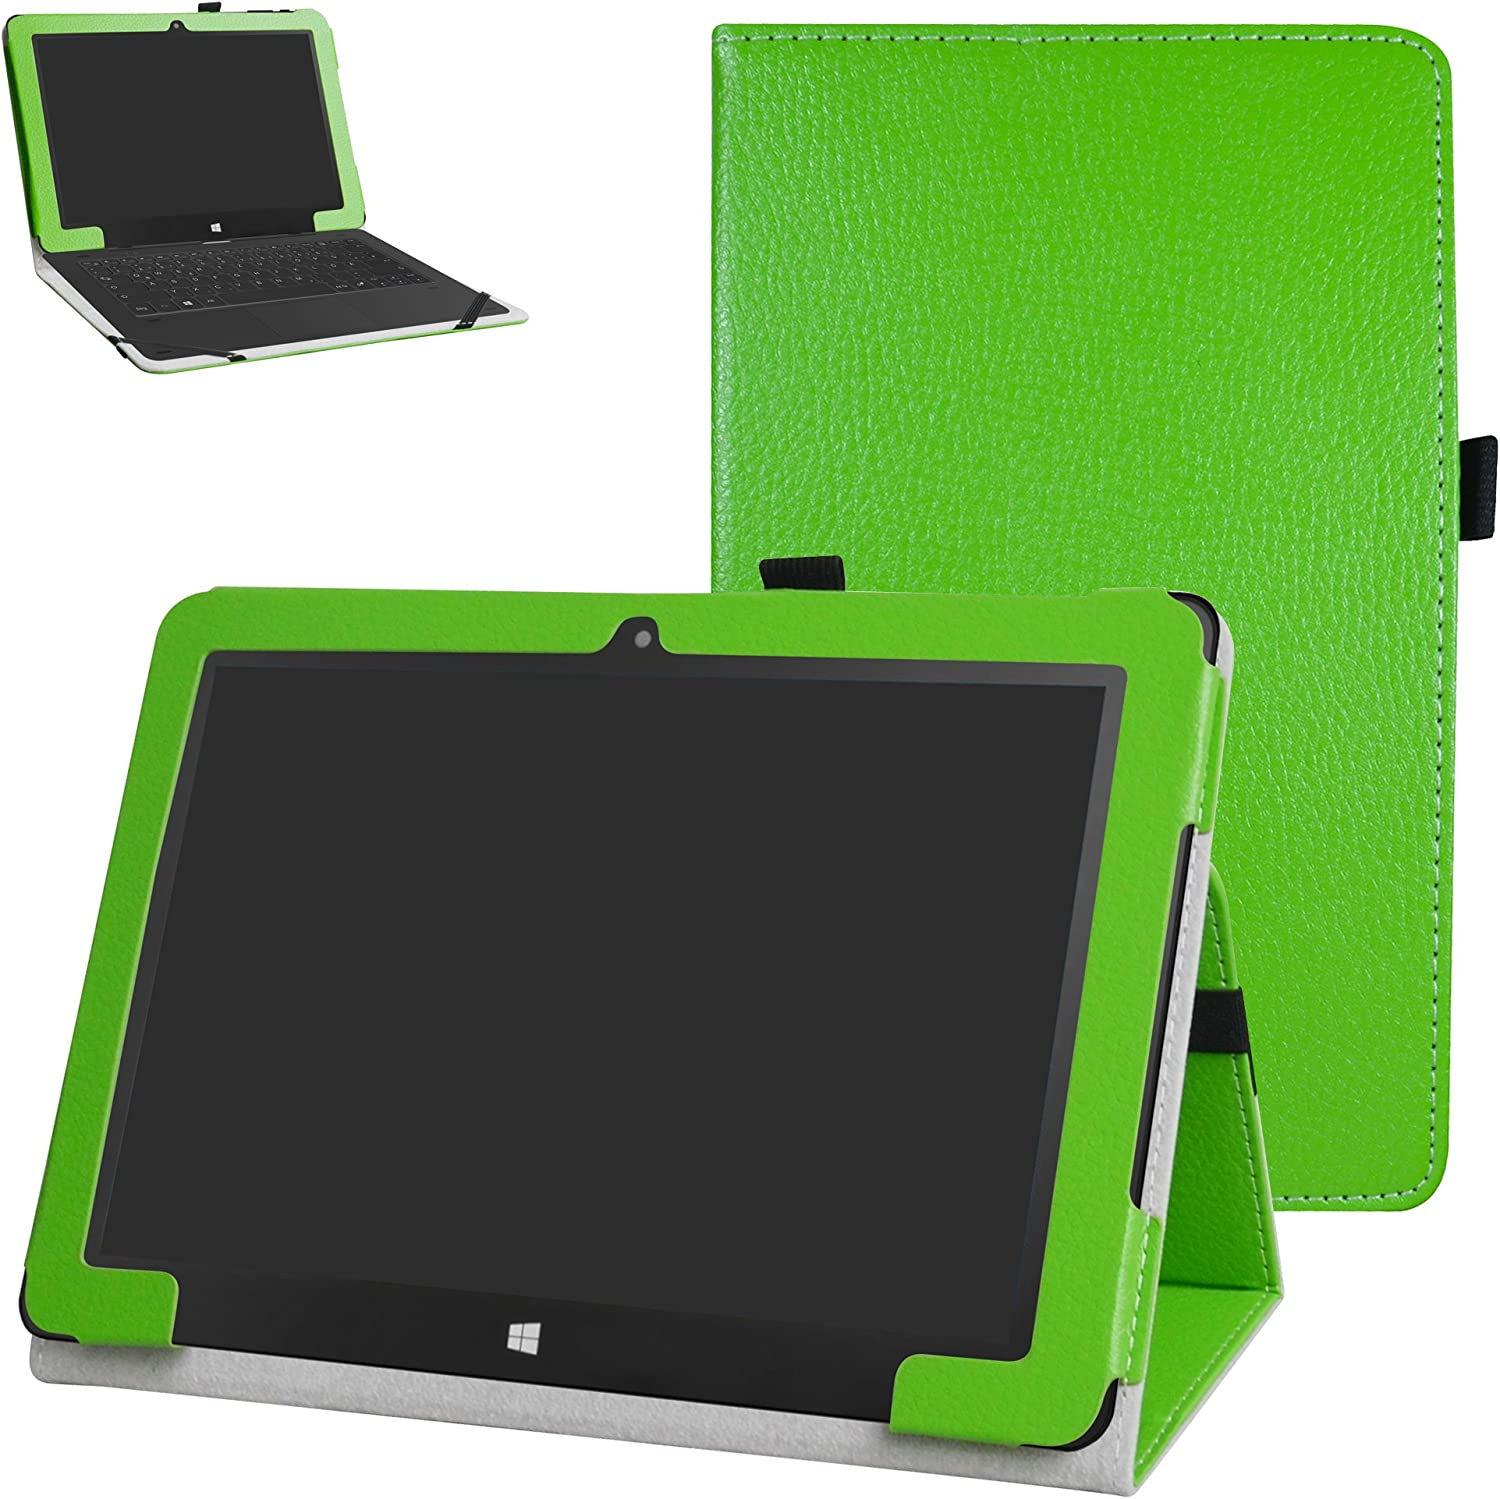 Insignia Flex NSP10W8100   NSP10A8100K Case,Mama Mouth PU Leather Folio 2Folding Stand Cover for 10.1  Insignia Flex NSP10W8100   NSP10A8100K Android Tablet,Green